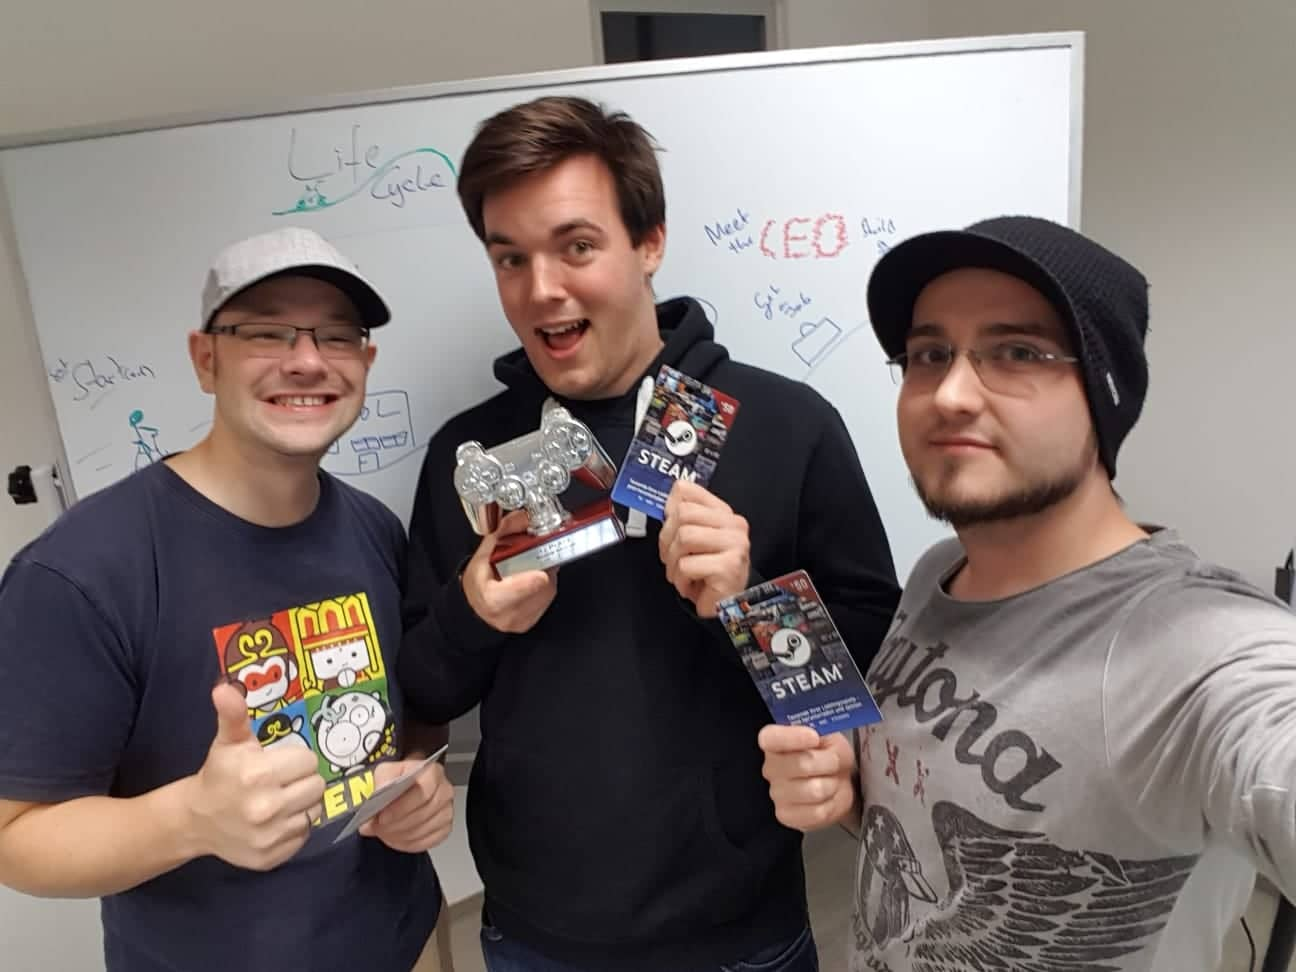 The team is shown from left to right: Till, Kai and Eugen